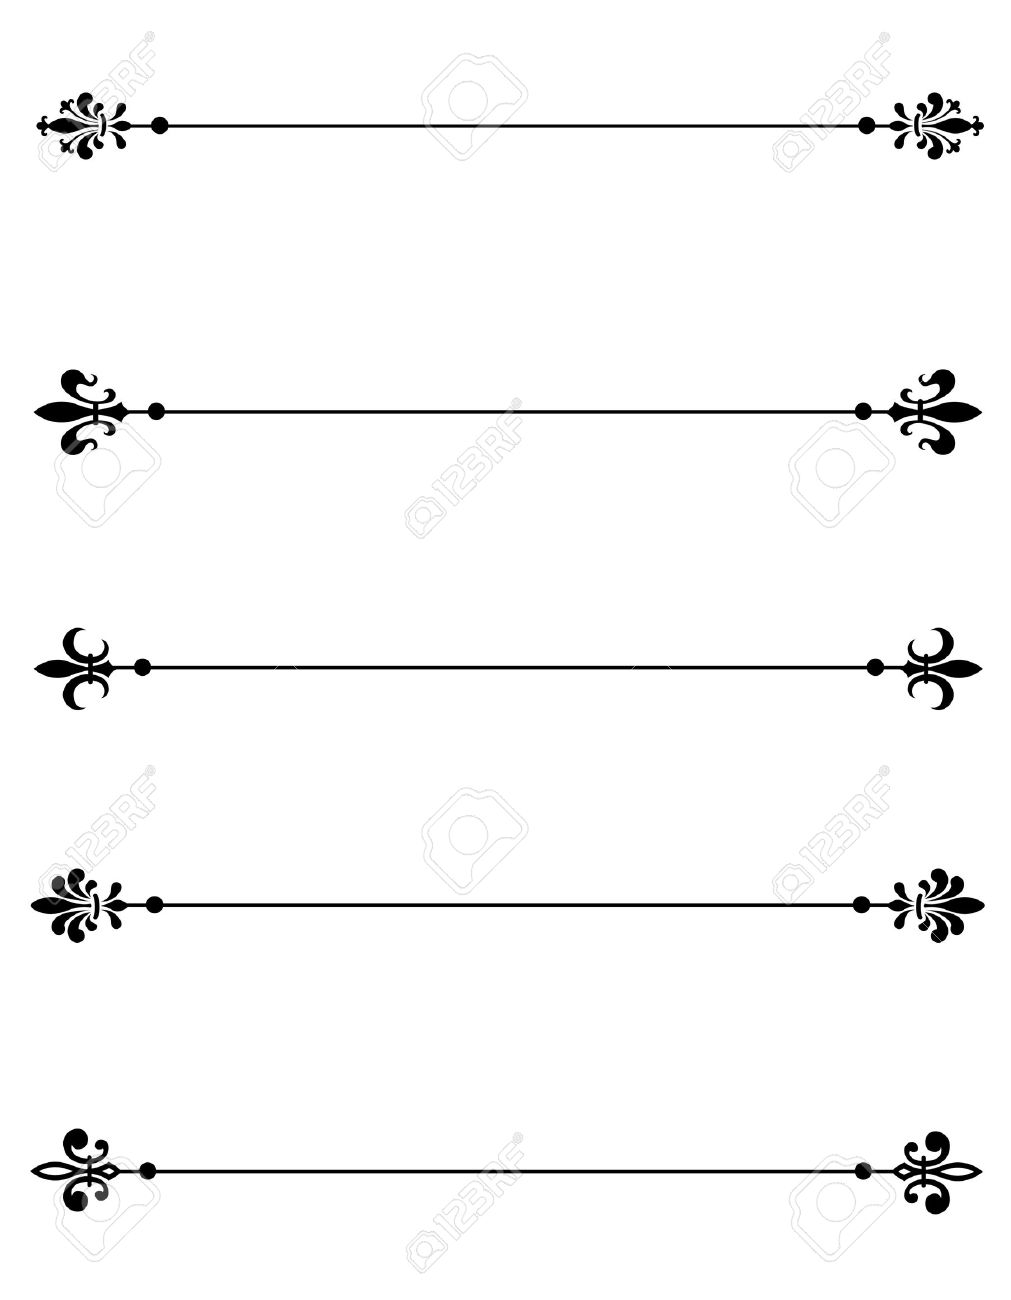 hight resolution of clip art collection of different decorative fleur de lis page dividers border collection stock vector